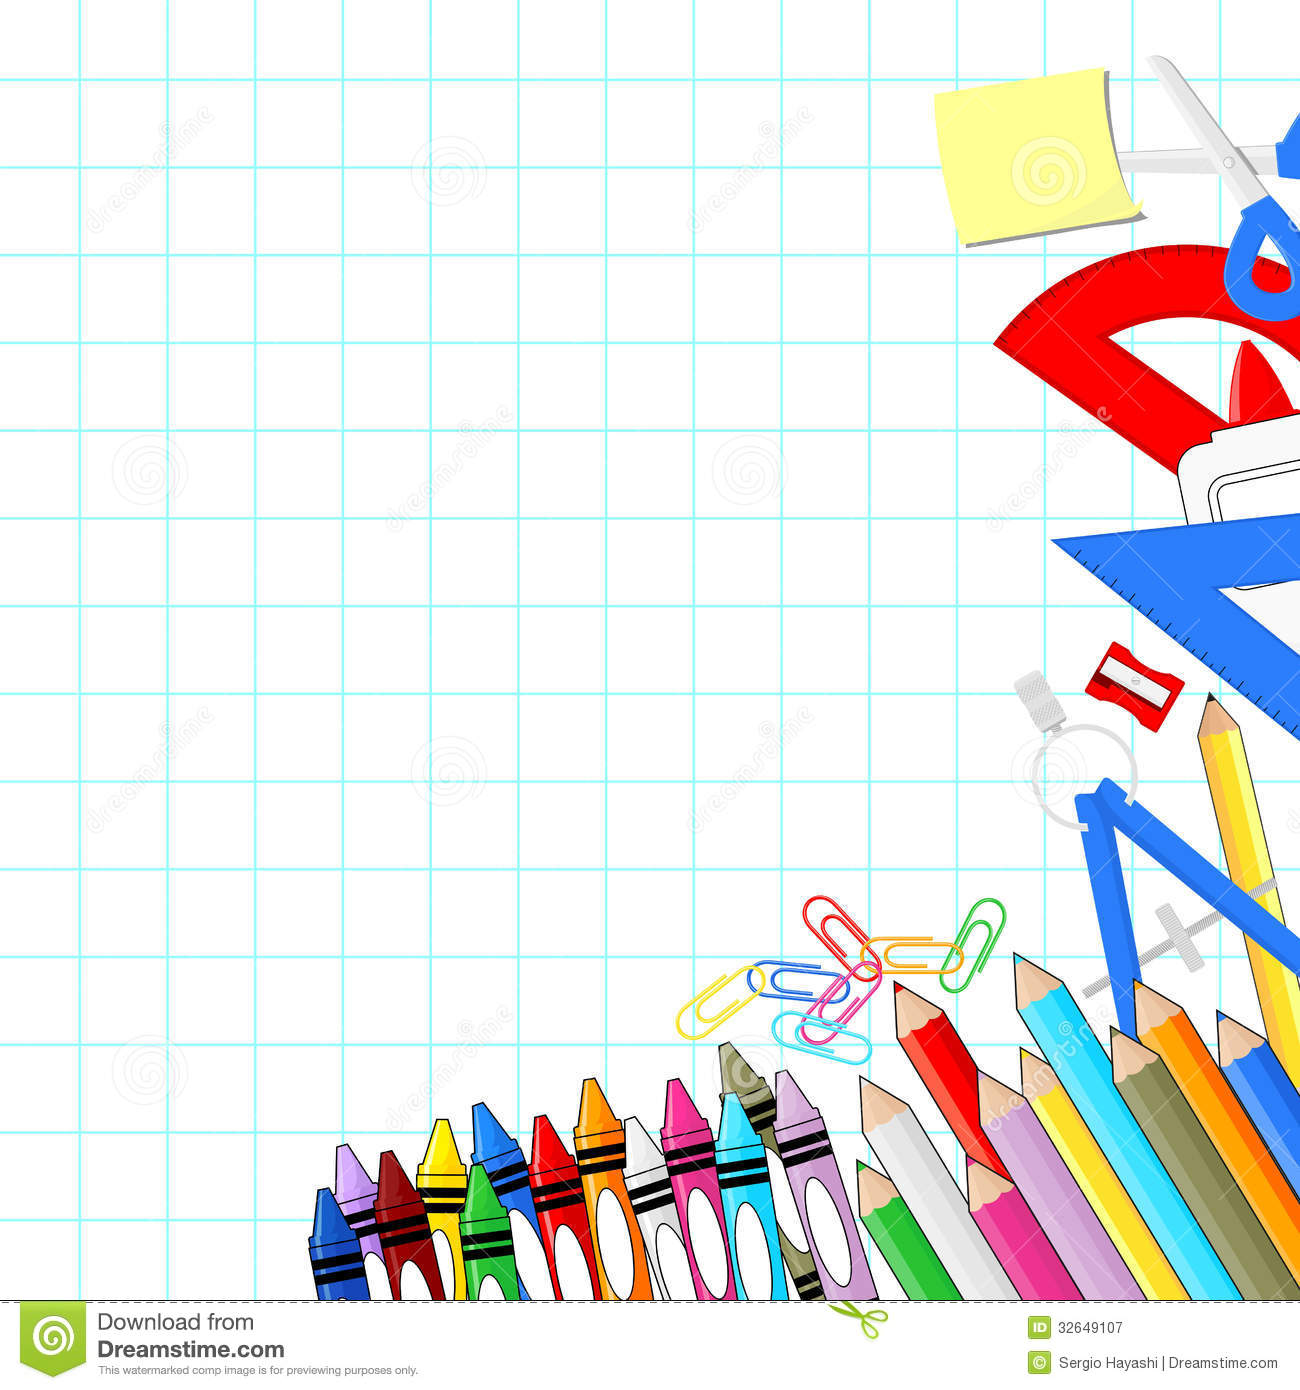 clipart school background - photo #21